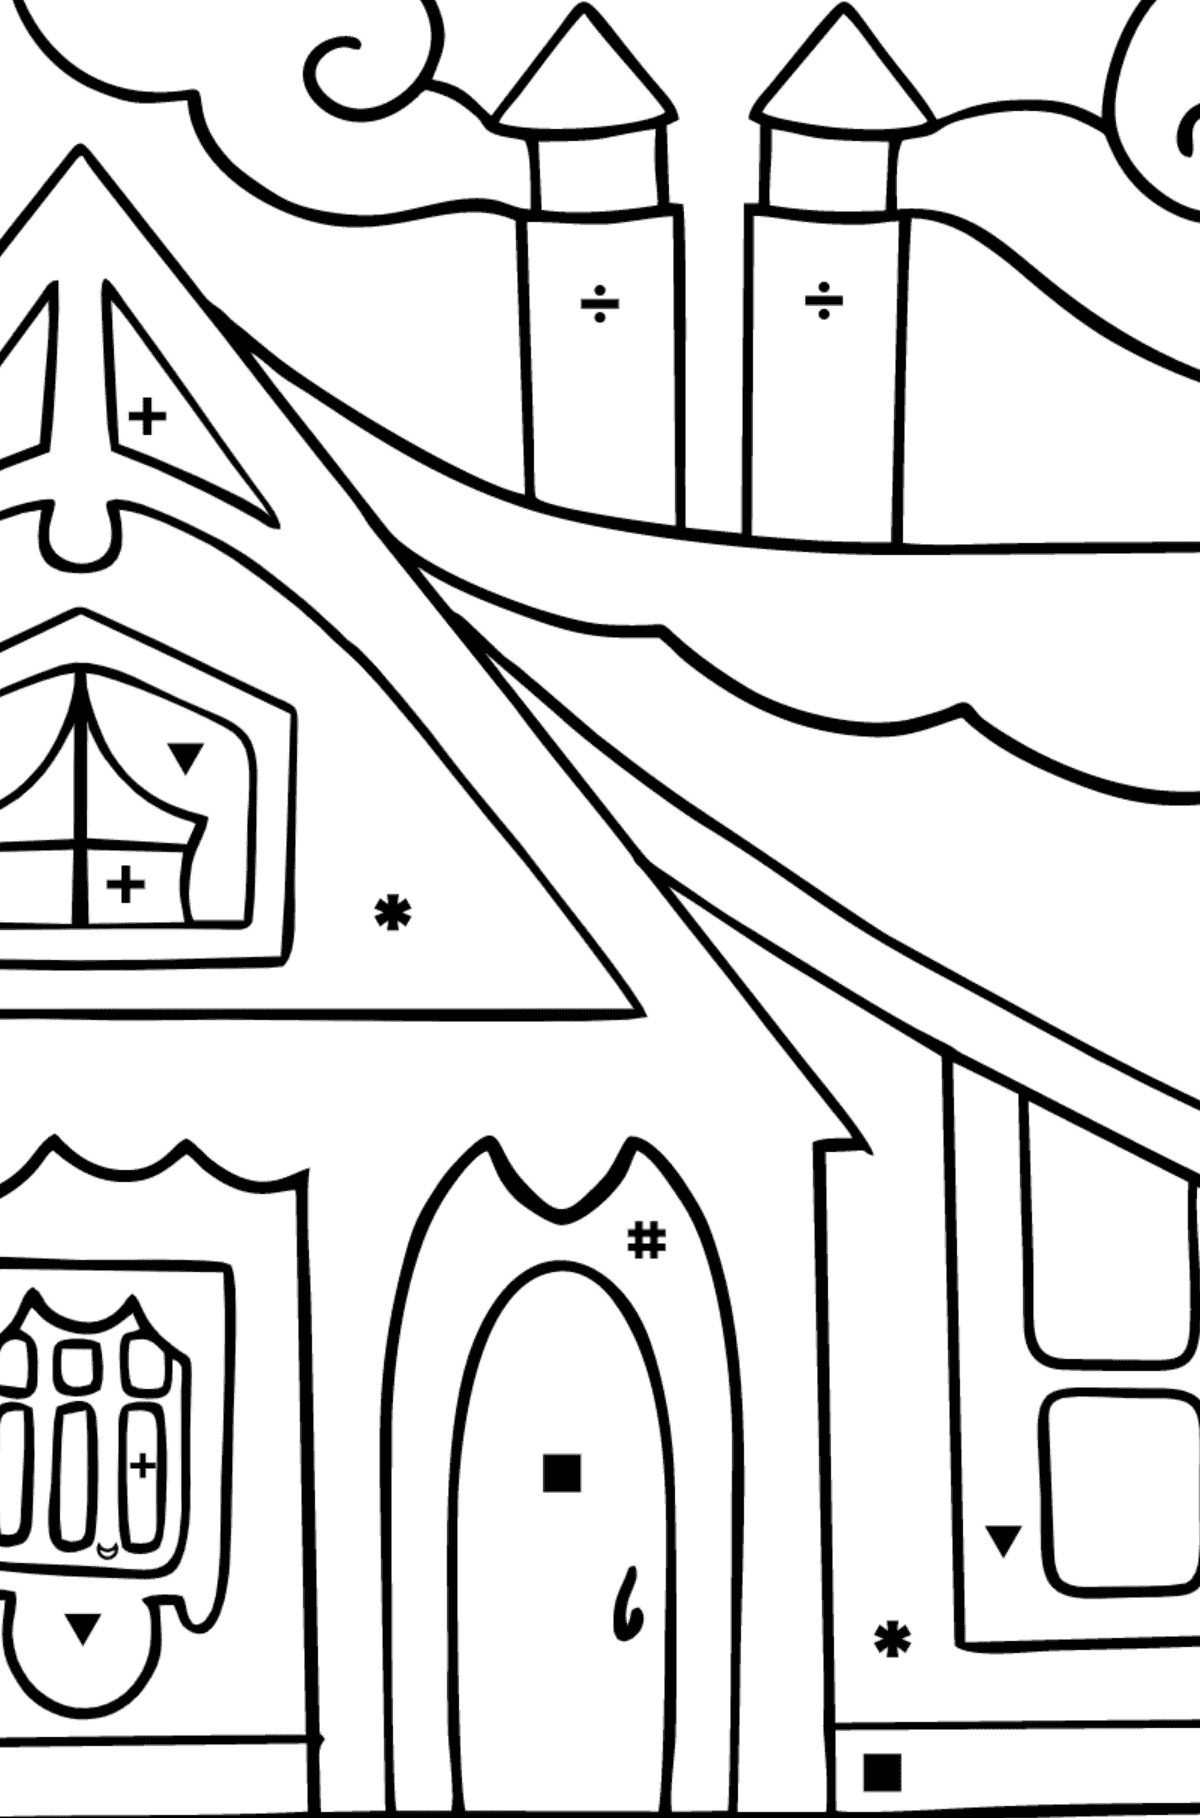 Coloring Page - A Tiny House - Coloring by Symbols for Children